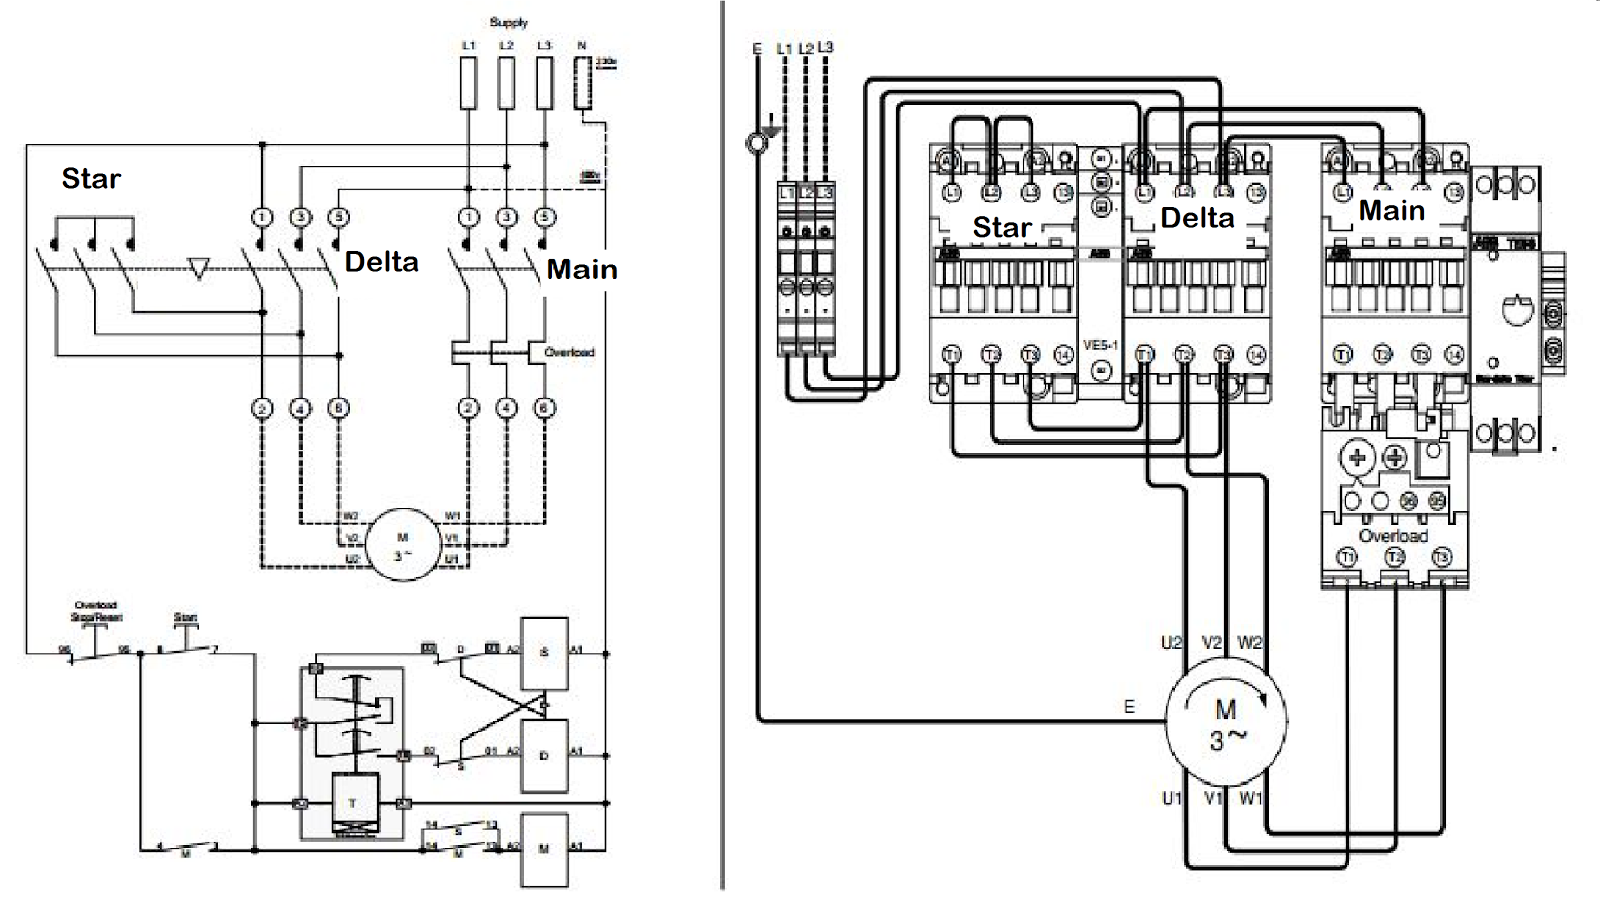 Three Phase Distribution Board Wiring Diagram besides 41176 Dp Halon Co2 And Mechanical Fire Extinguishers additionally Specification For Conduit Wiring In Electrical Construction Contract Works additionally How To Wire 3 Phase Kwh Meter From furthermore Interconnections. on distribution board